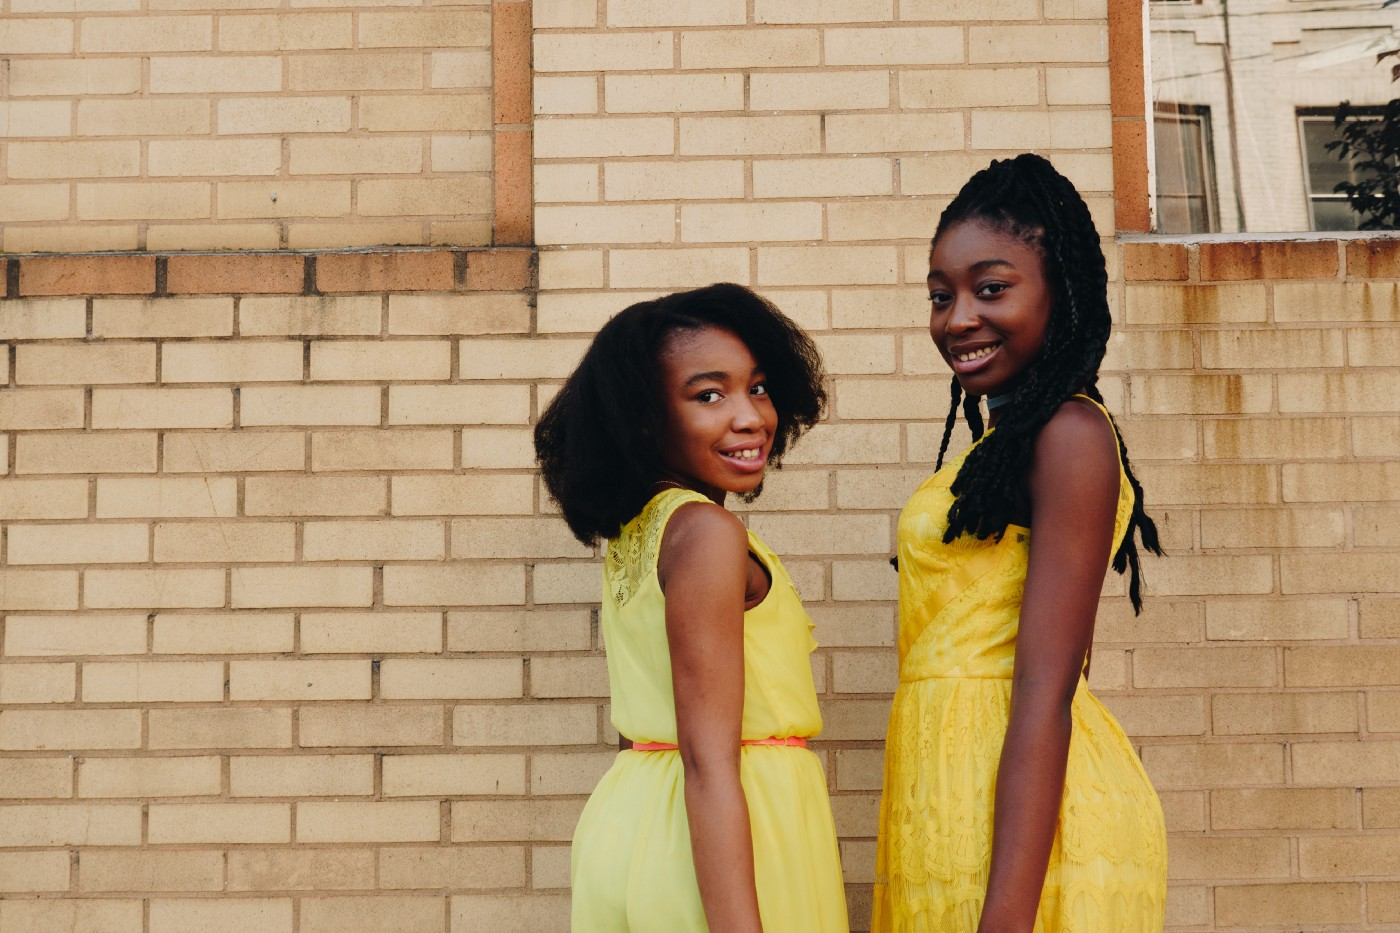 Two young black girls in yellow dresses, smiling, looking toward the photographer, standing in front of a brick wall.